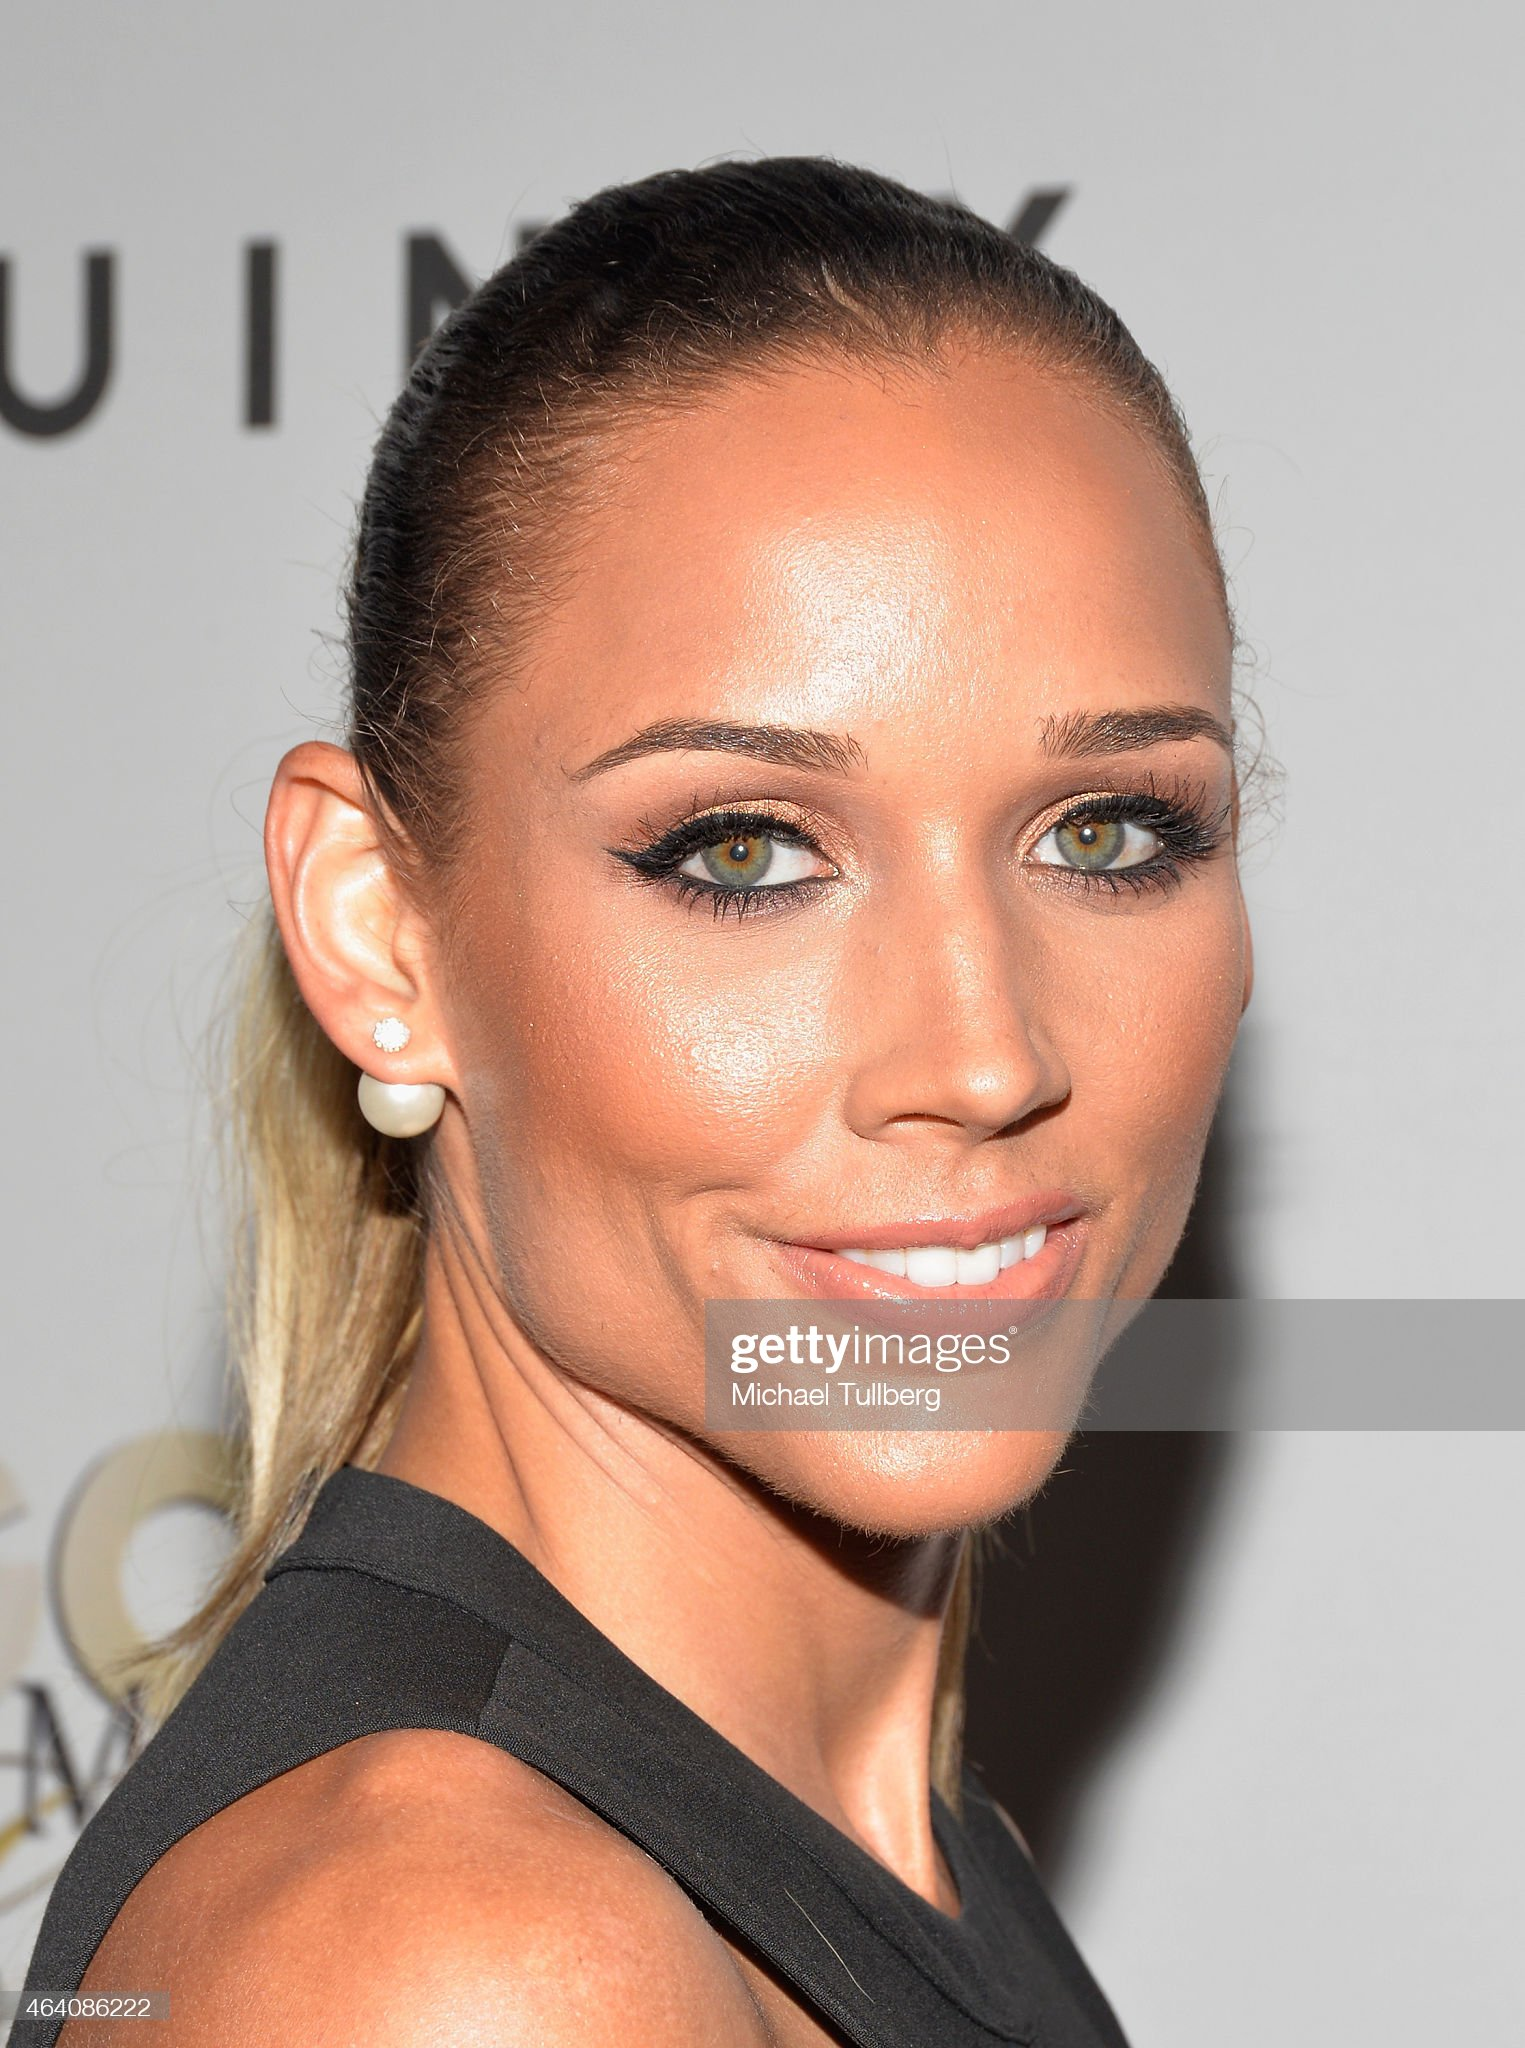 COLOR DE OJOS (clasificación y debate de personas famosas) Olympic-hurdler-lolo-jones-attends-the-3rd-annual-gold-meets-golden-picture-id464086222?s=2048x2048